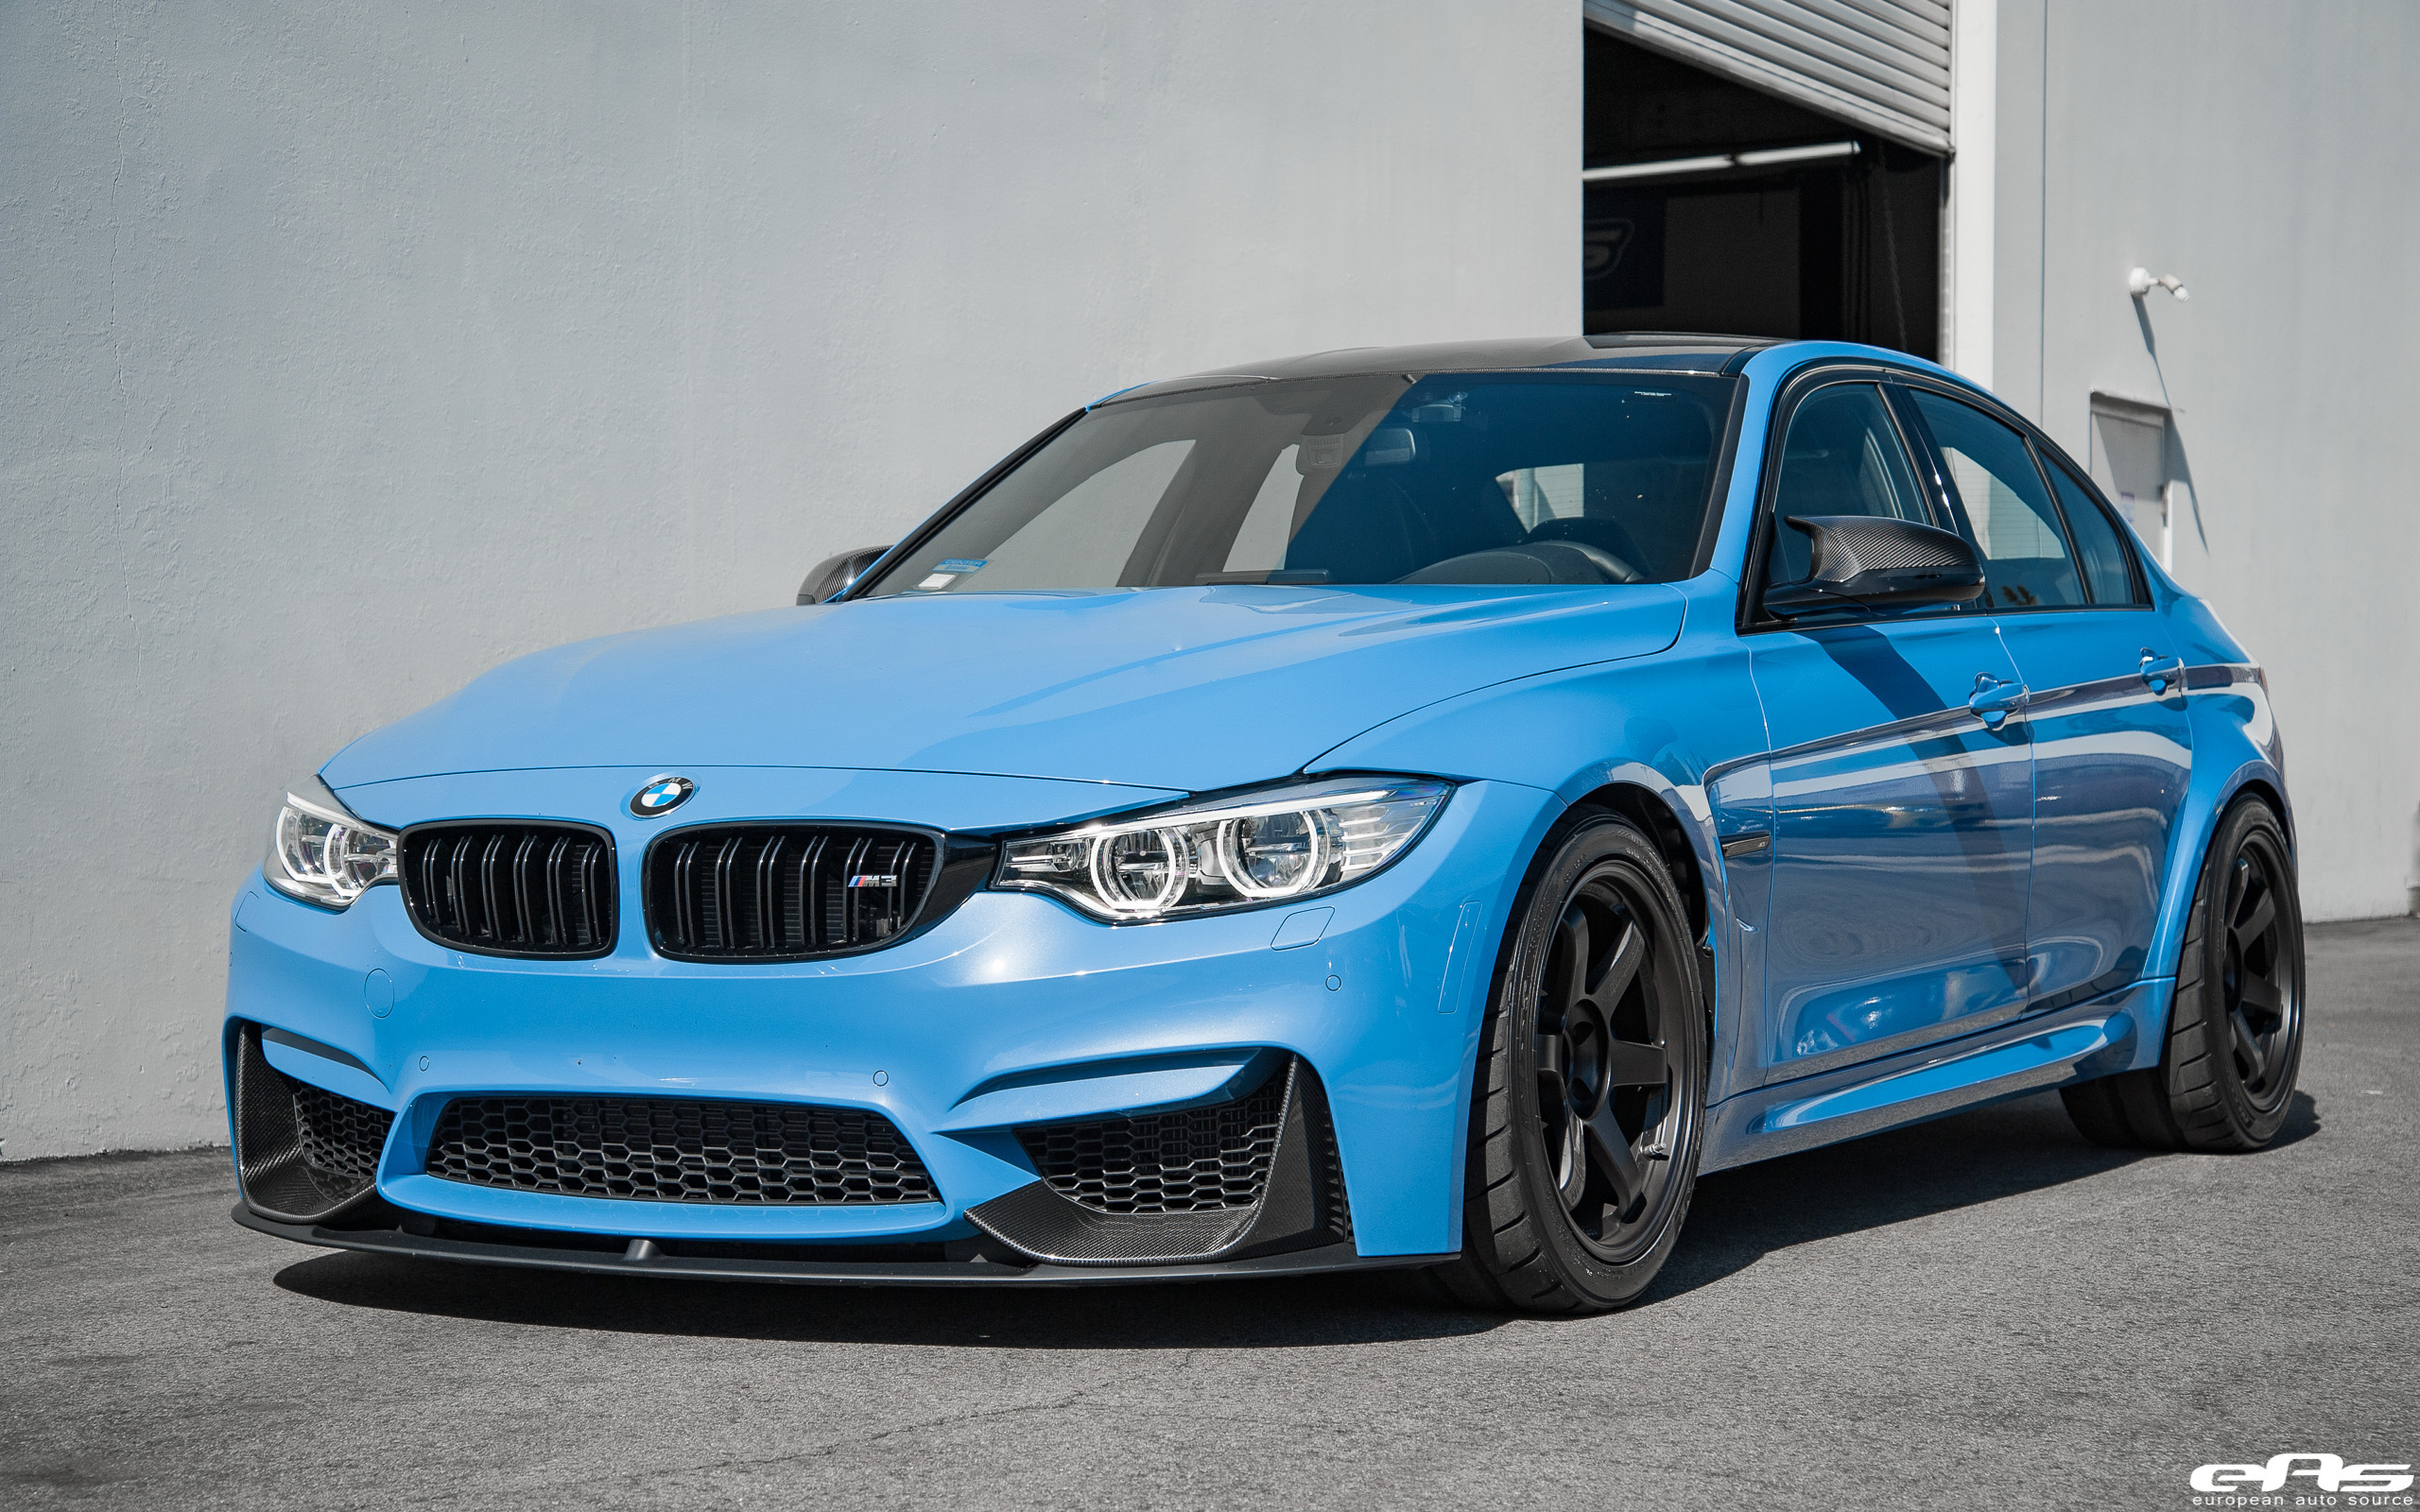 Yas Marina F80 Bmw M3 By Eas Looks Marvelous With M Performance Parts Bmw Car Tuning